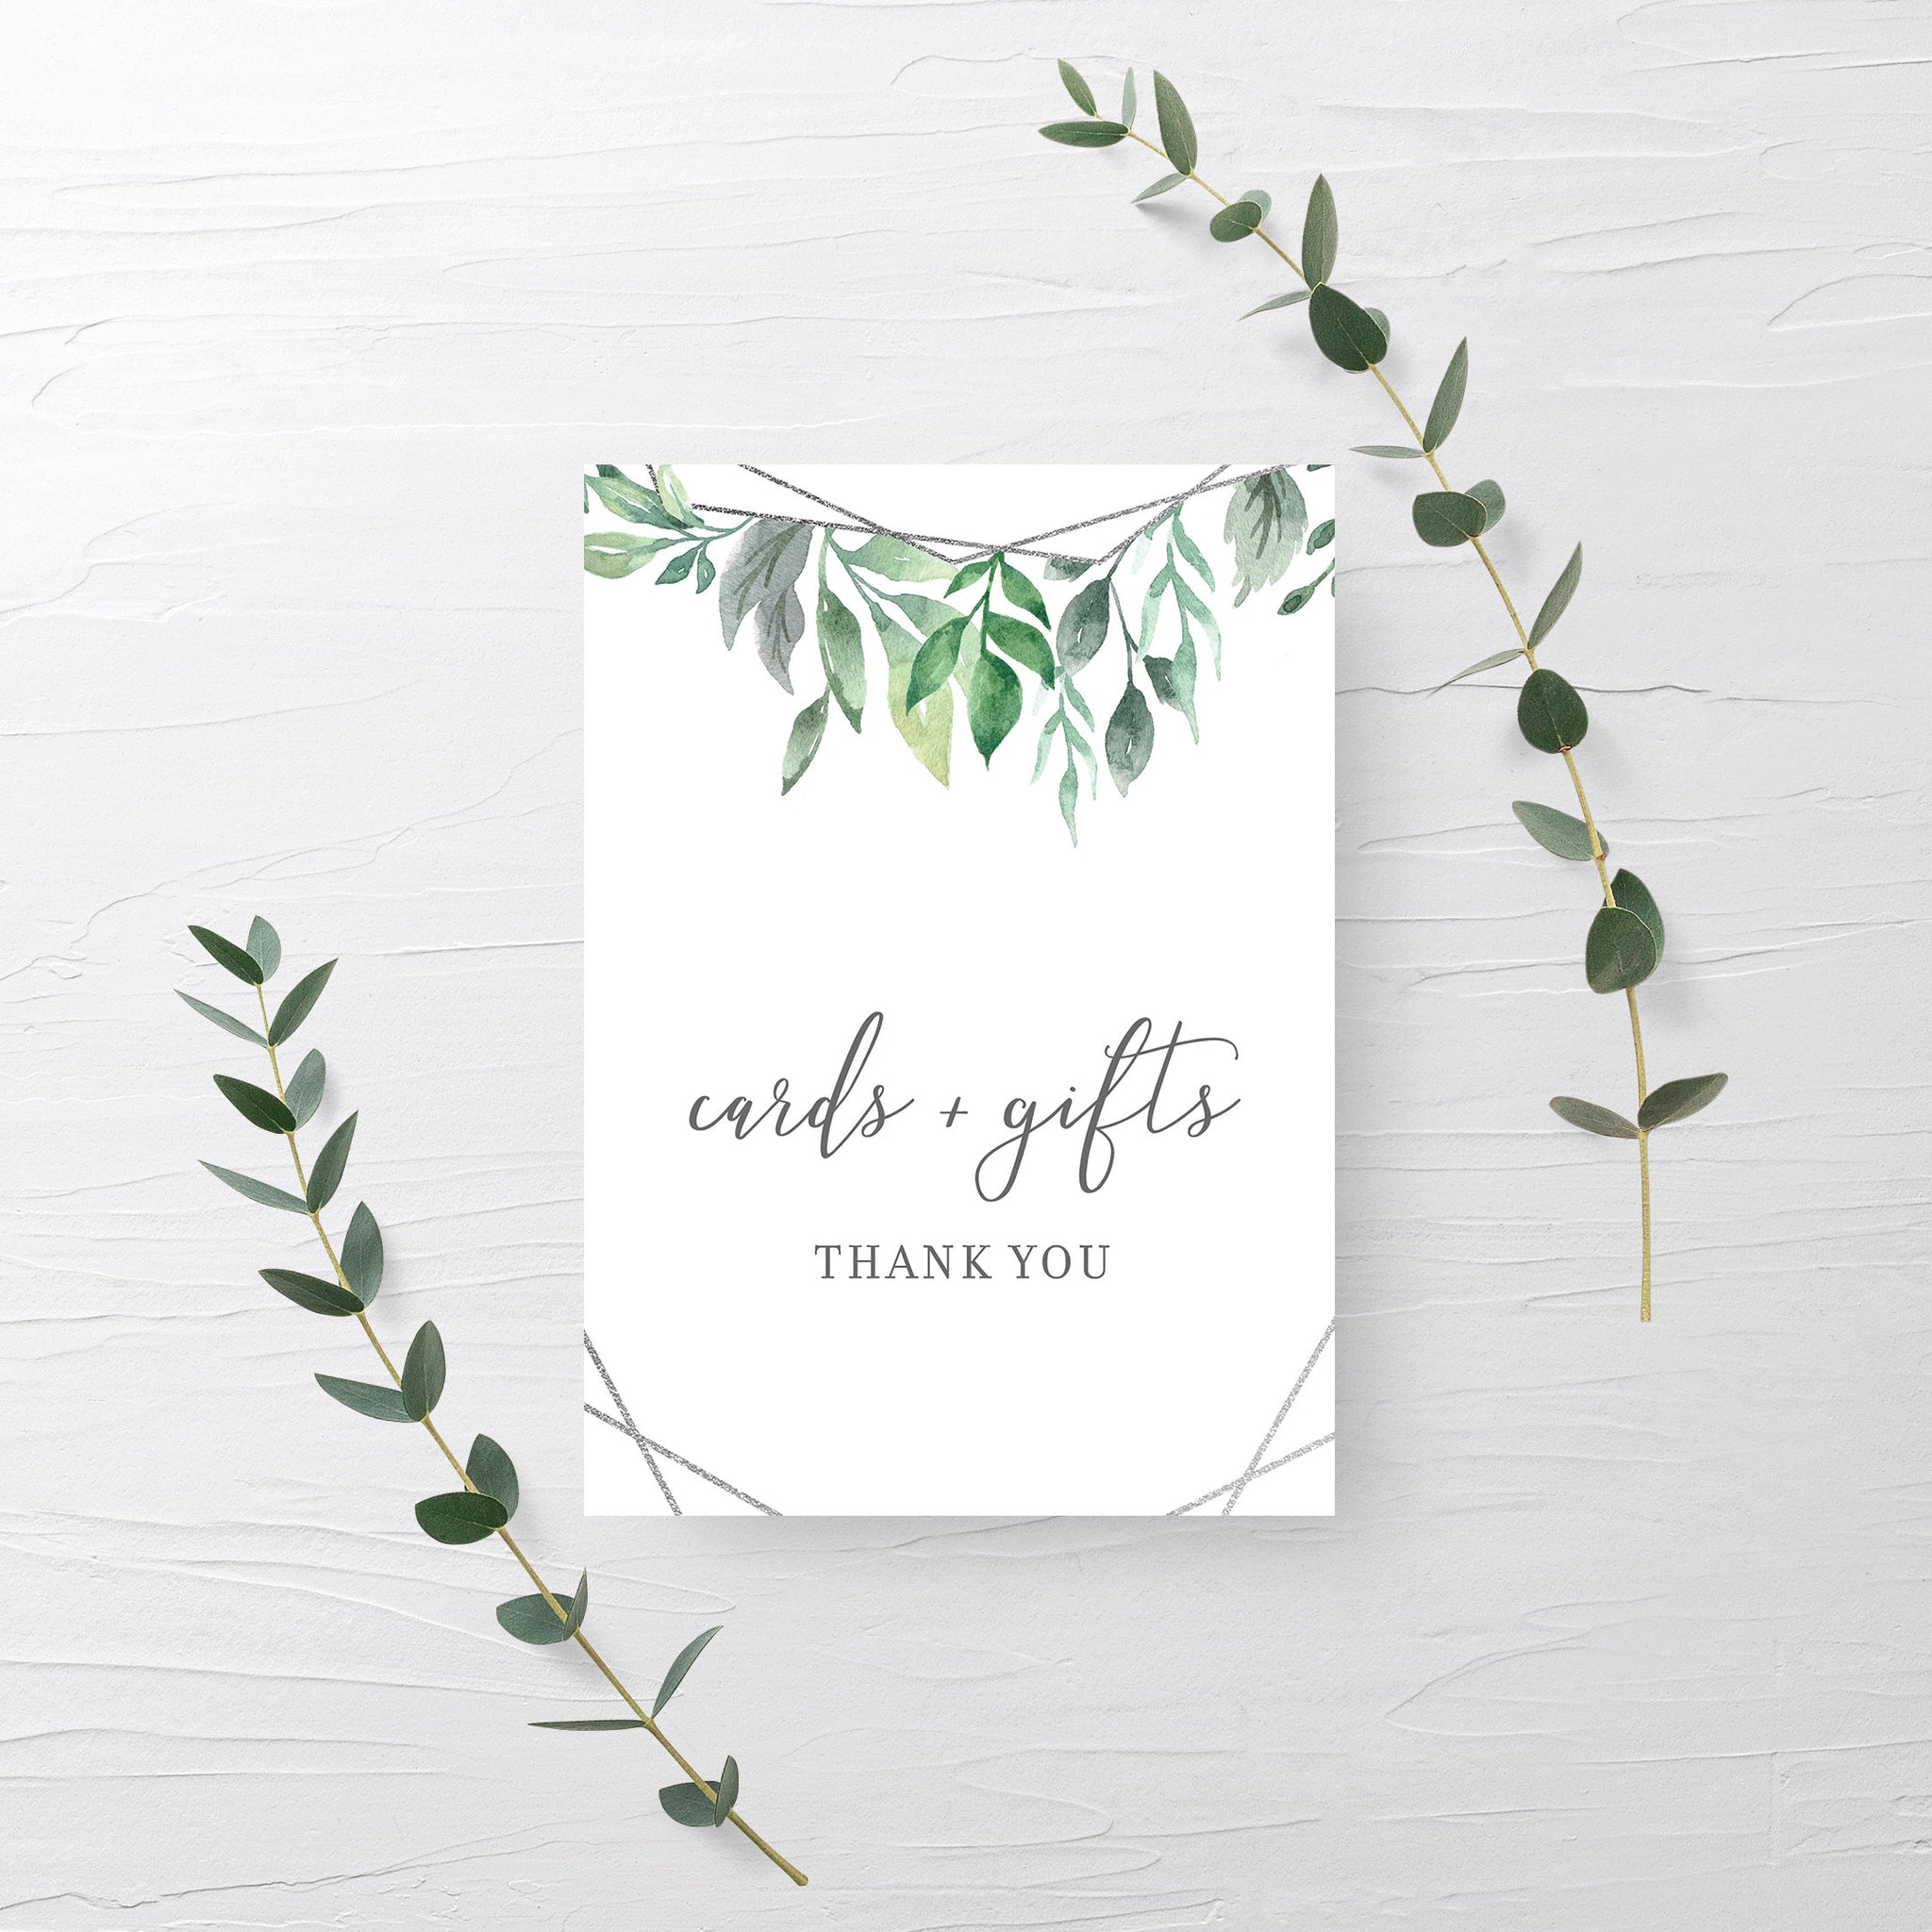 Geometric Silver Greenery Cards and Gifts Printable Sign INSTANT DOWNLOAD, Bridal Shower, Baby Shower, Wedding Decorations Supplies - GFS100 - @PlumPolkaDot